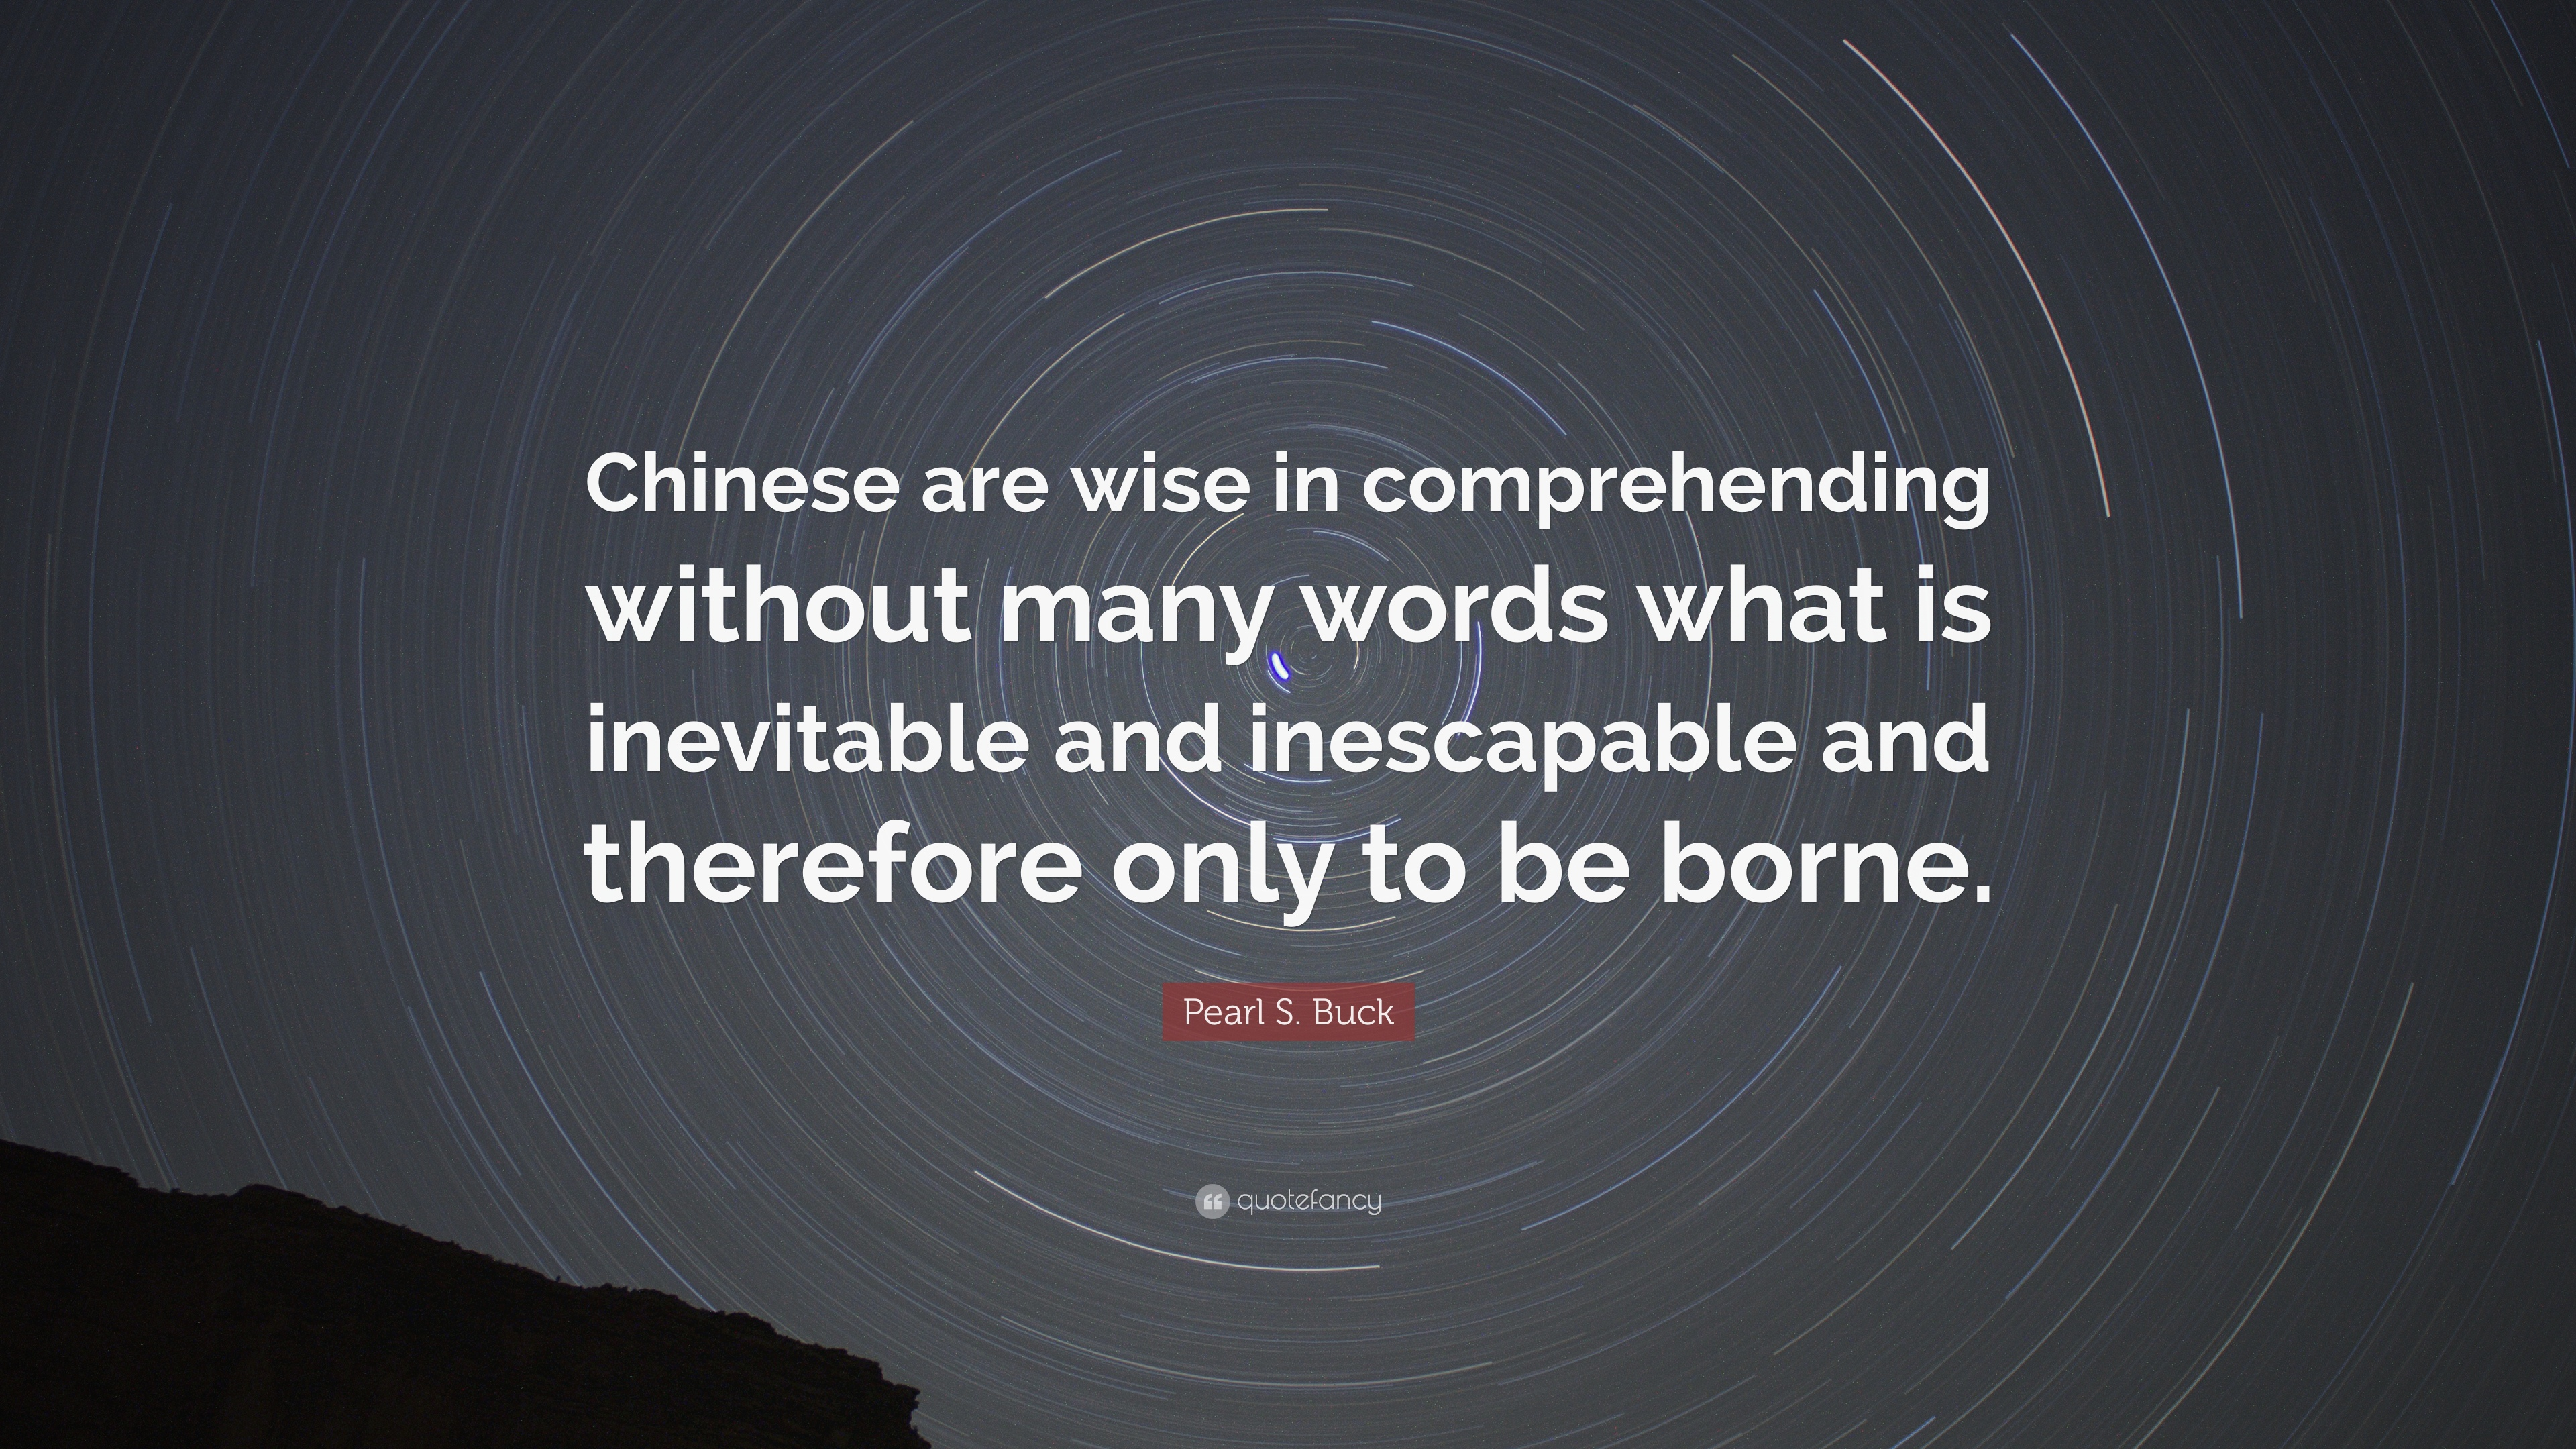 Pearl S Buck Quote Chinese Are Wise In Comprehending Without Many Words What